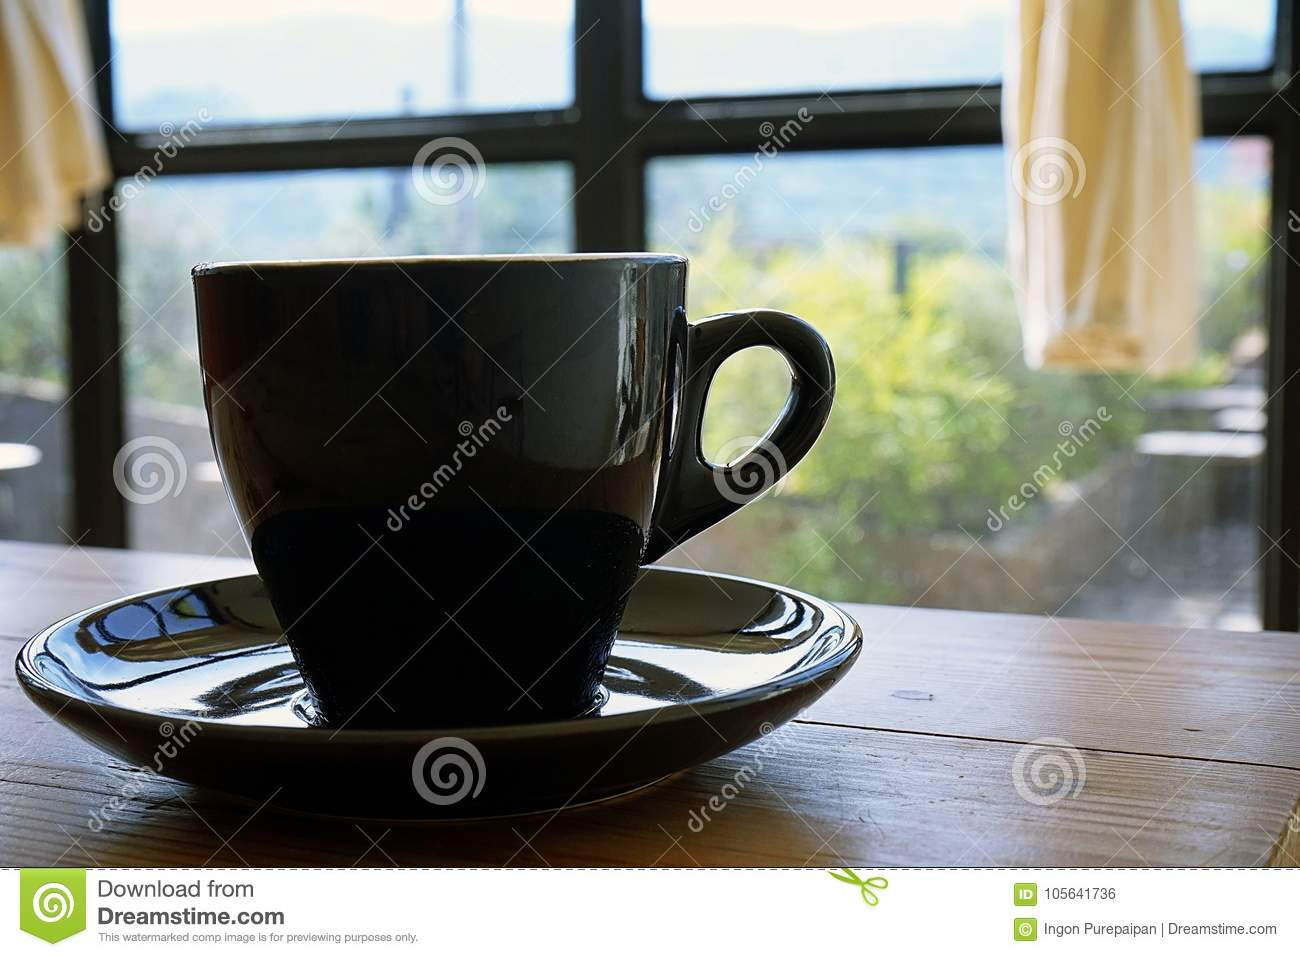 Bru Coffee Green Garden Black Cup With Steaming Hot Coffee On The Wooden Table